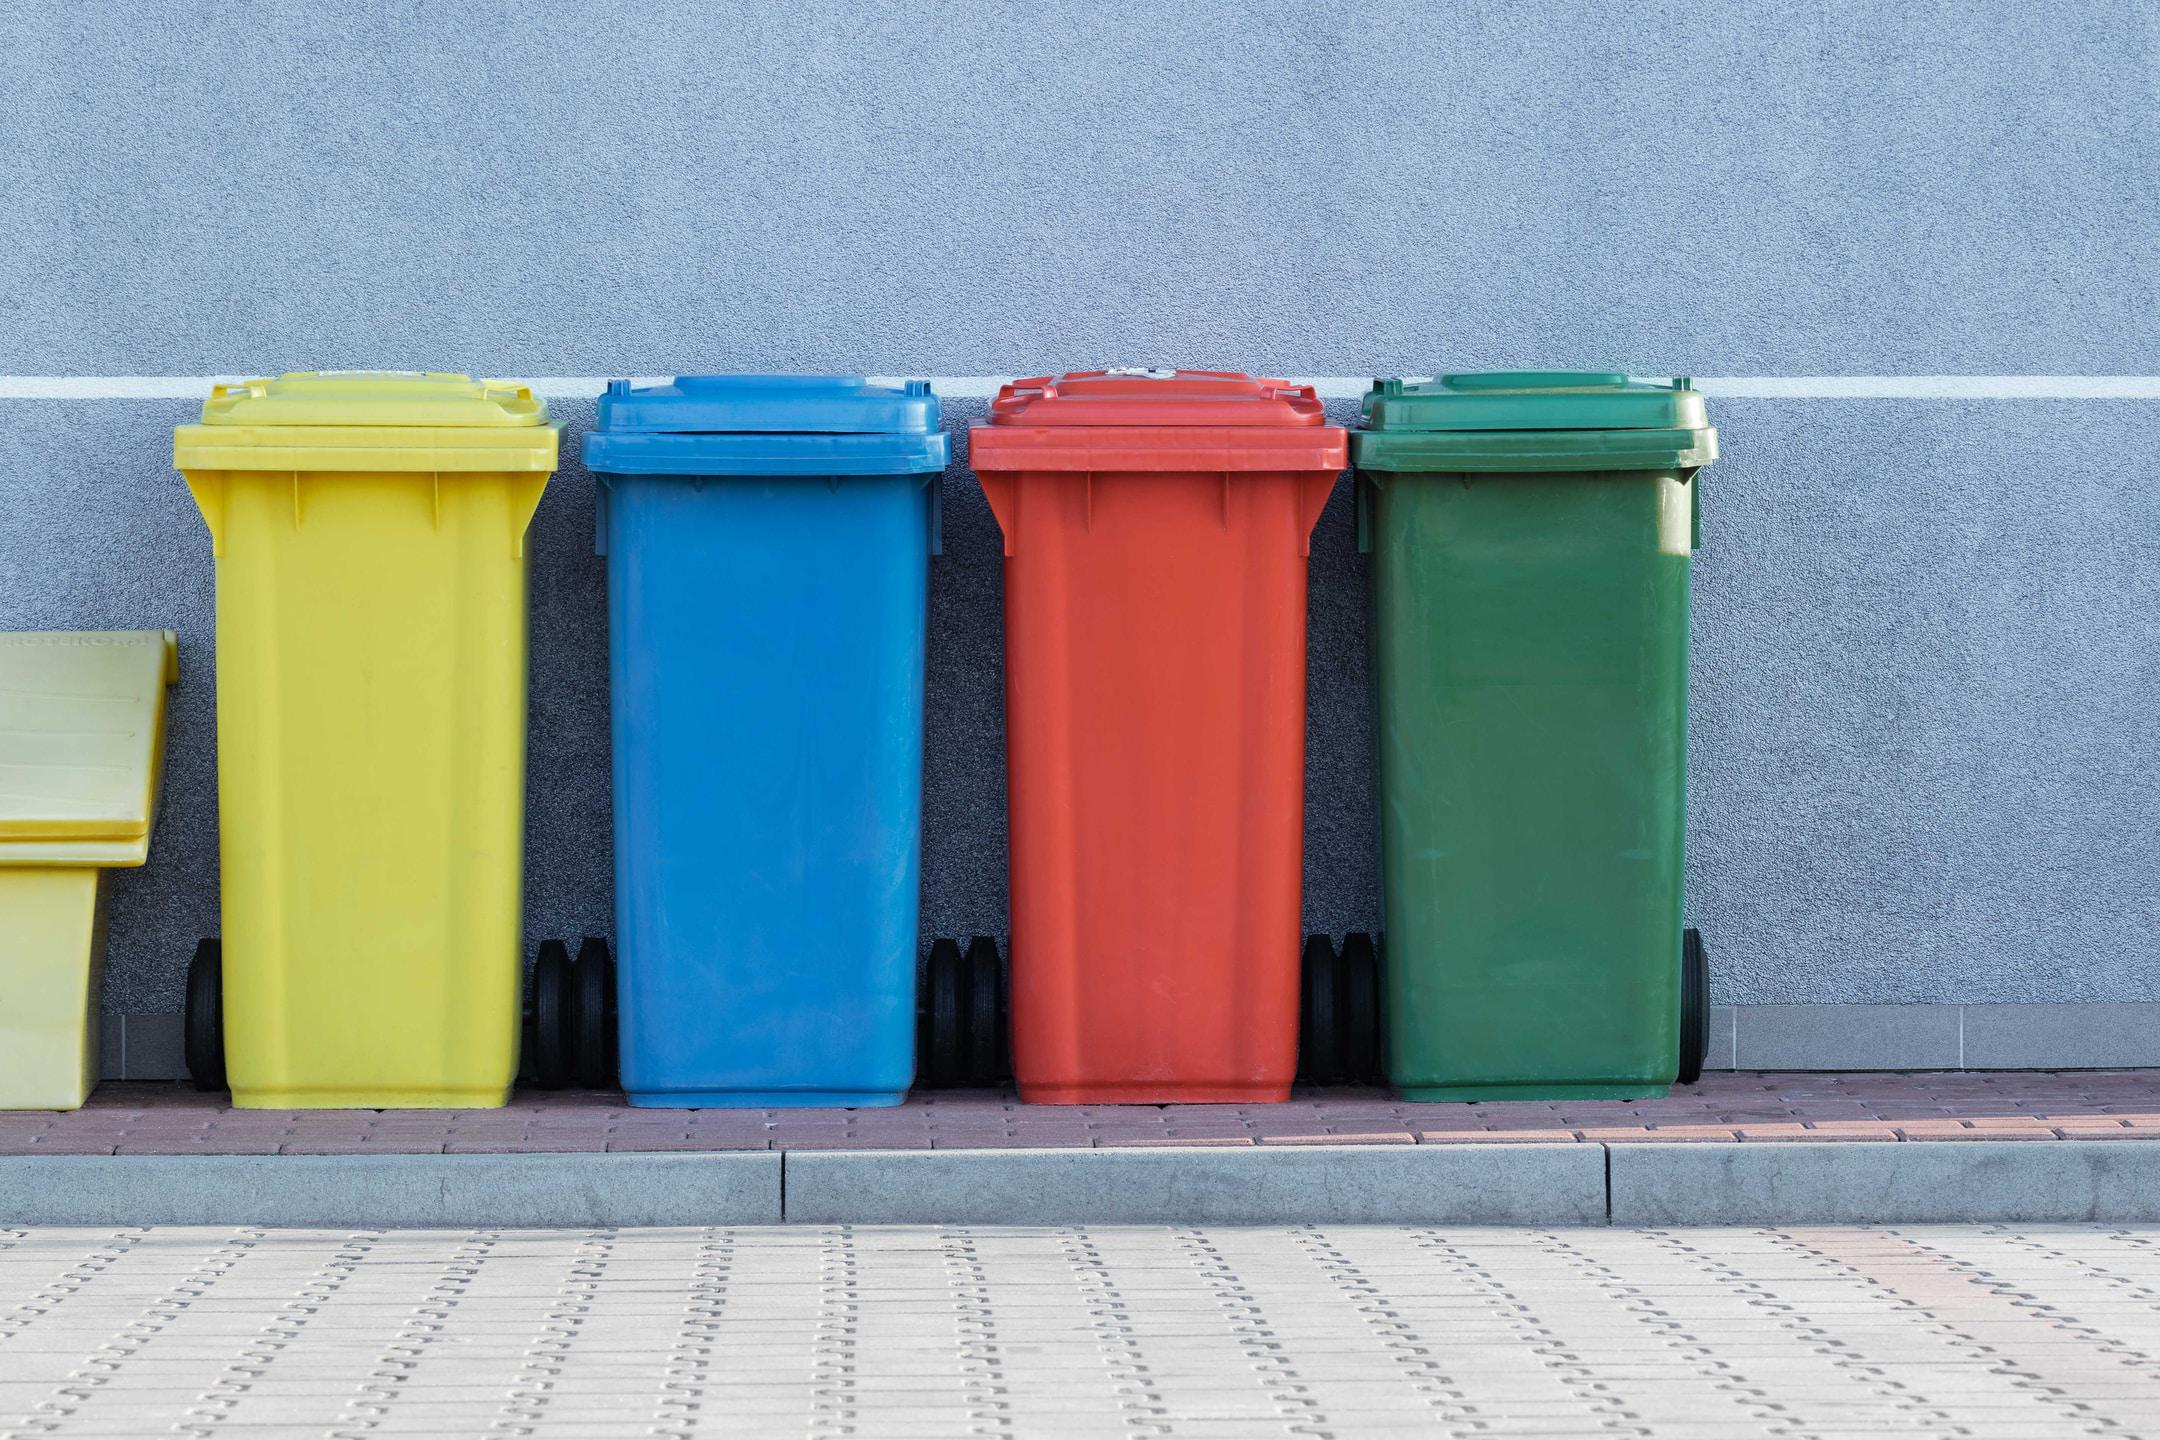 four brightly colored trash bins lined up neatly on a sidewalk